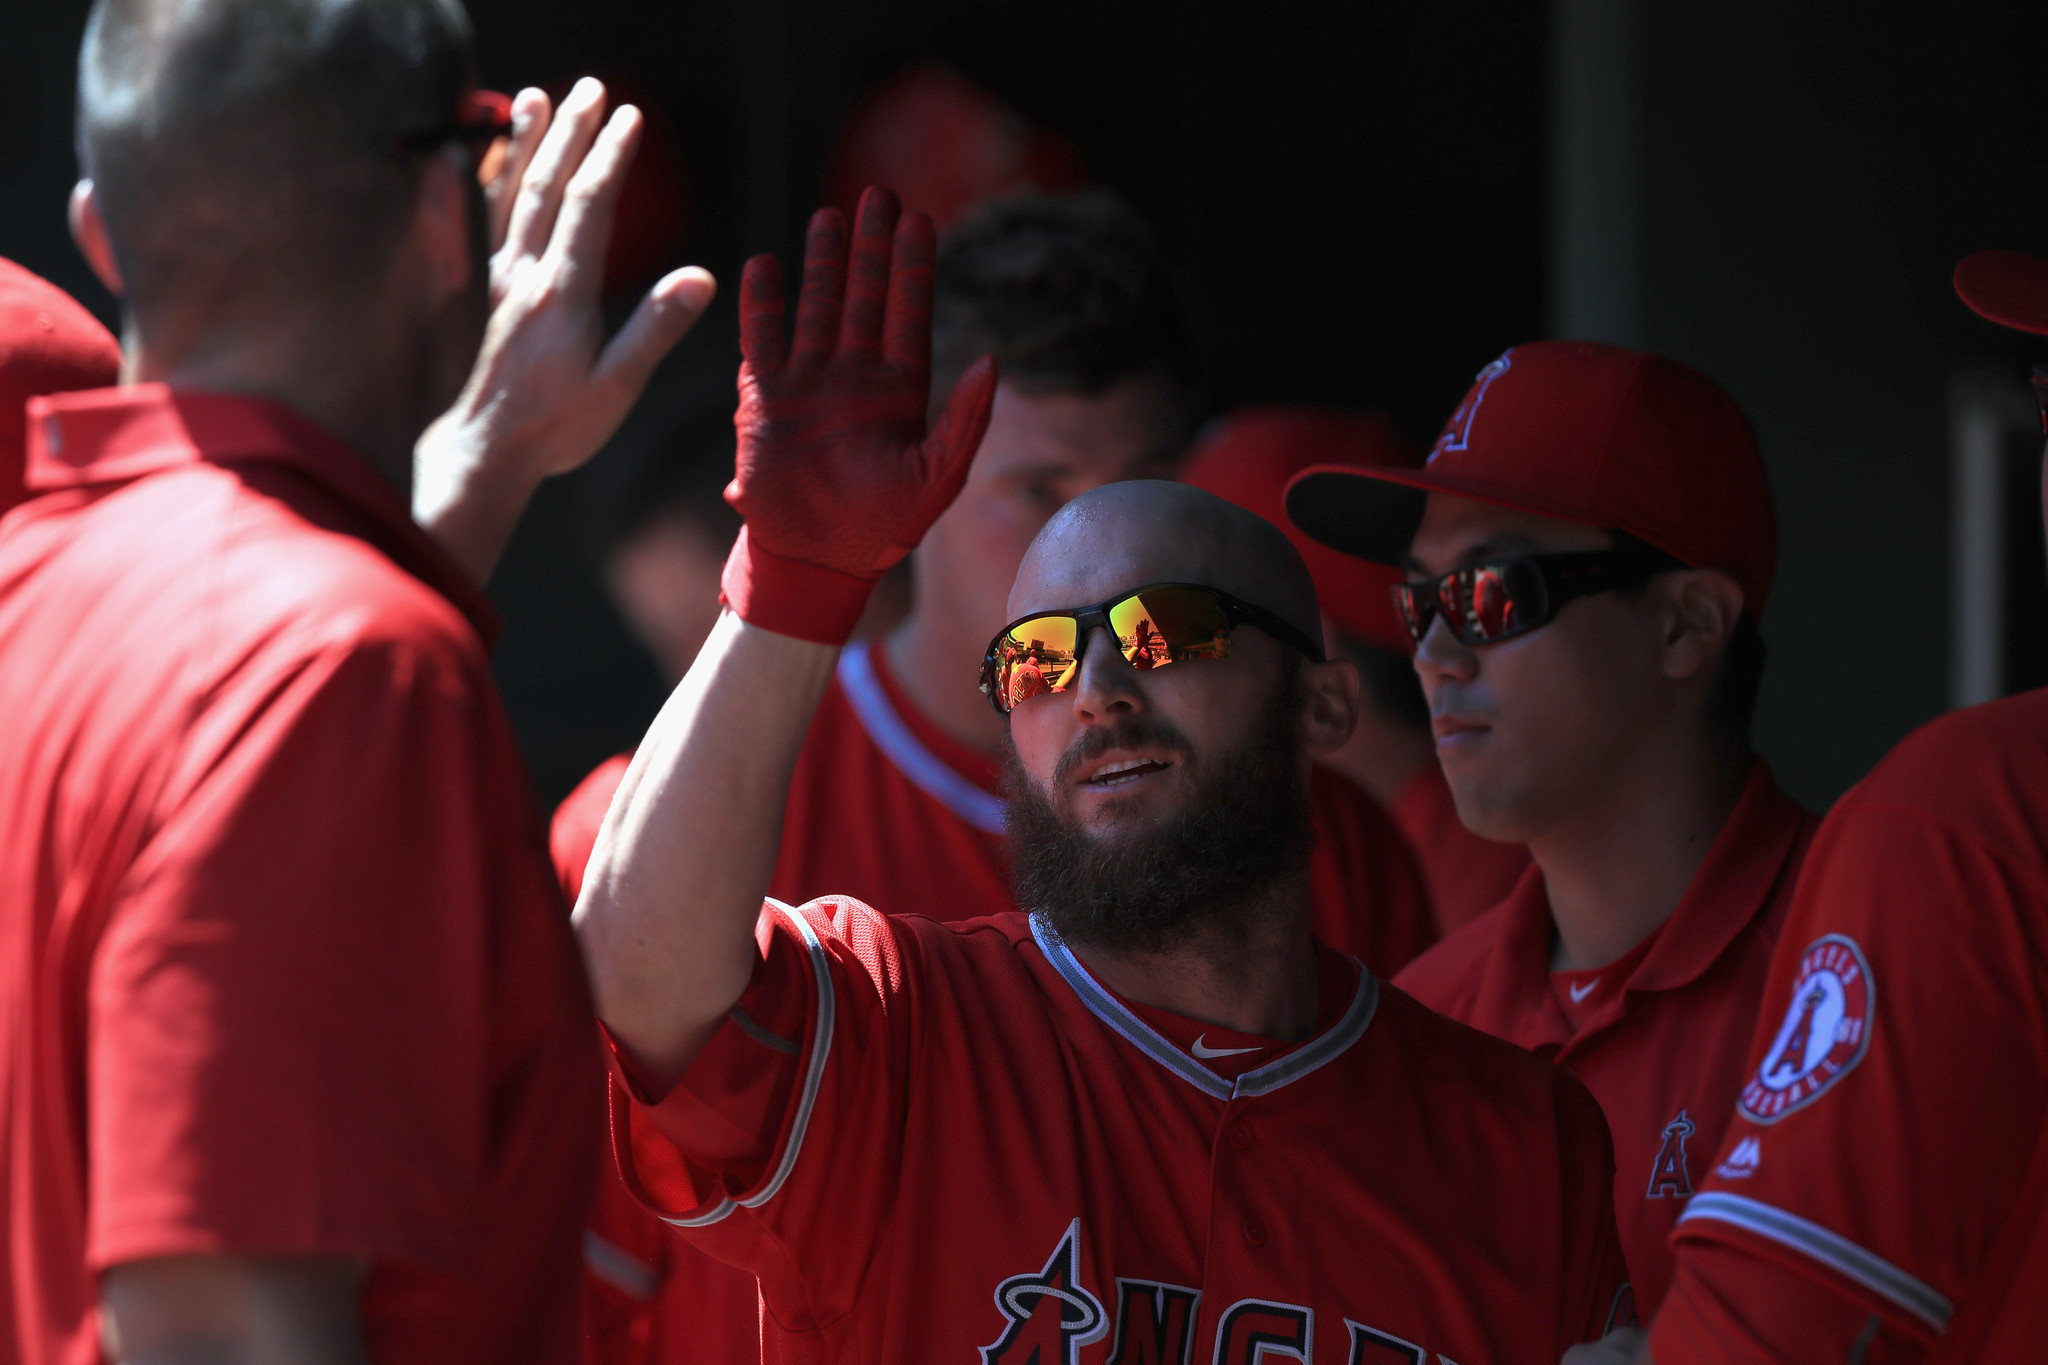 La-sp-angels-report-20160504